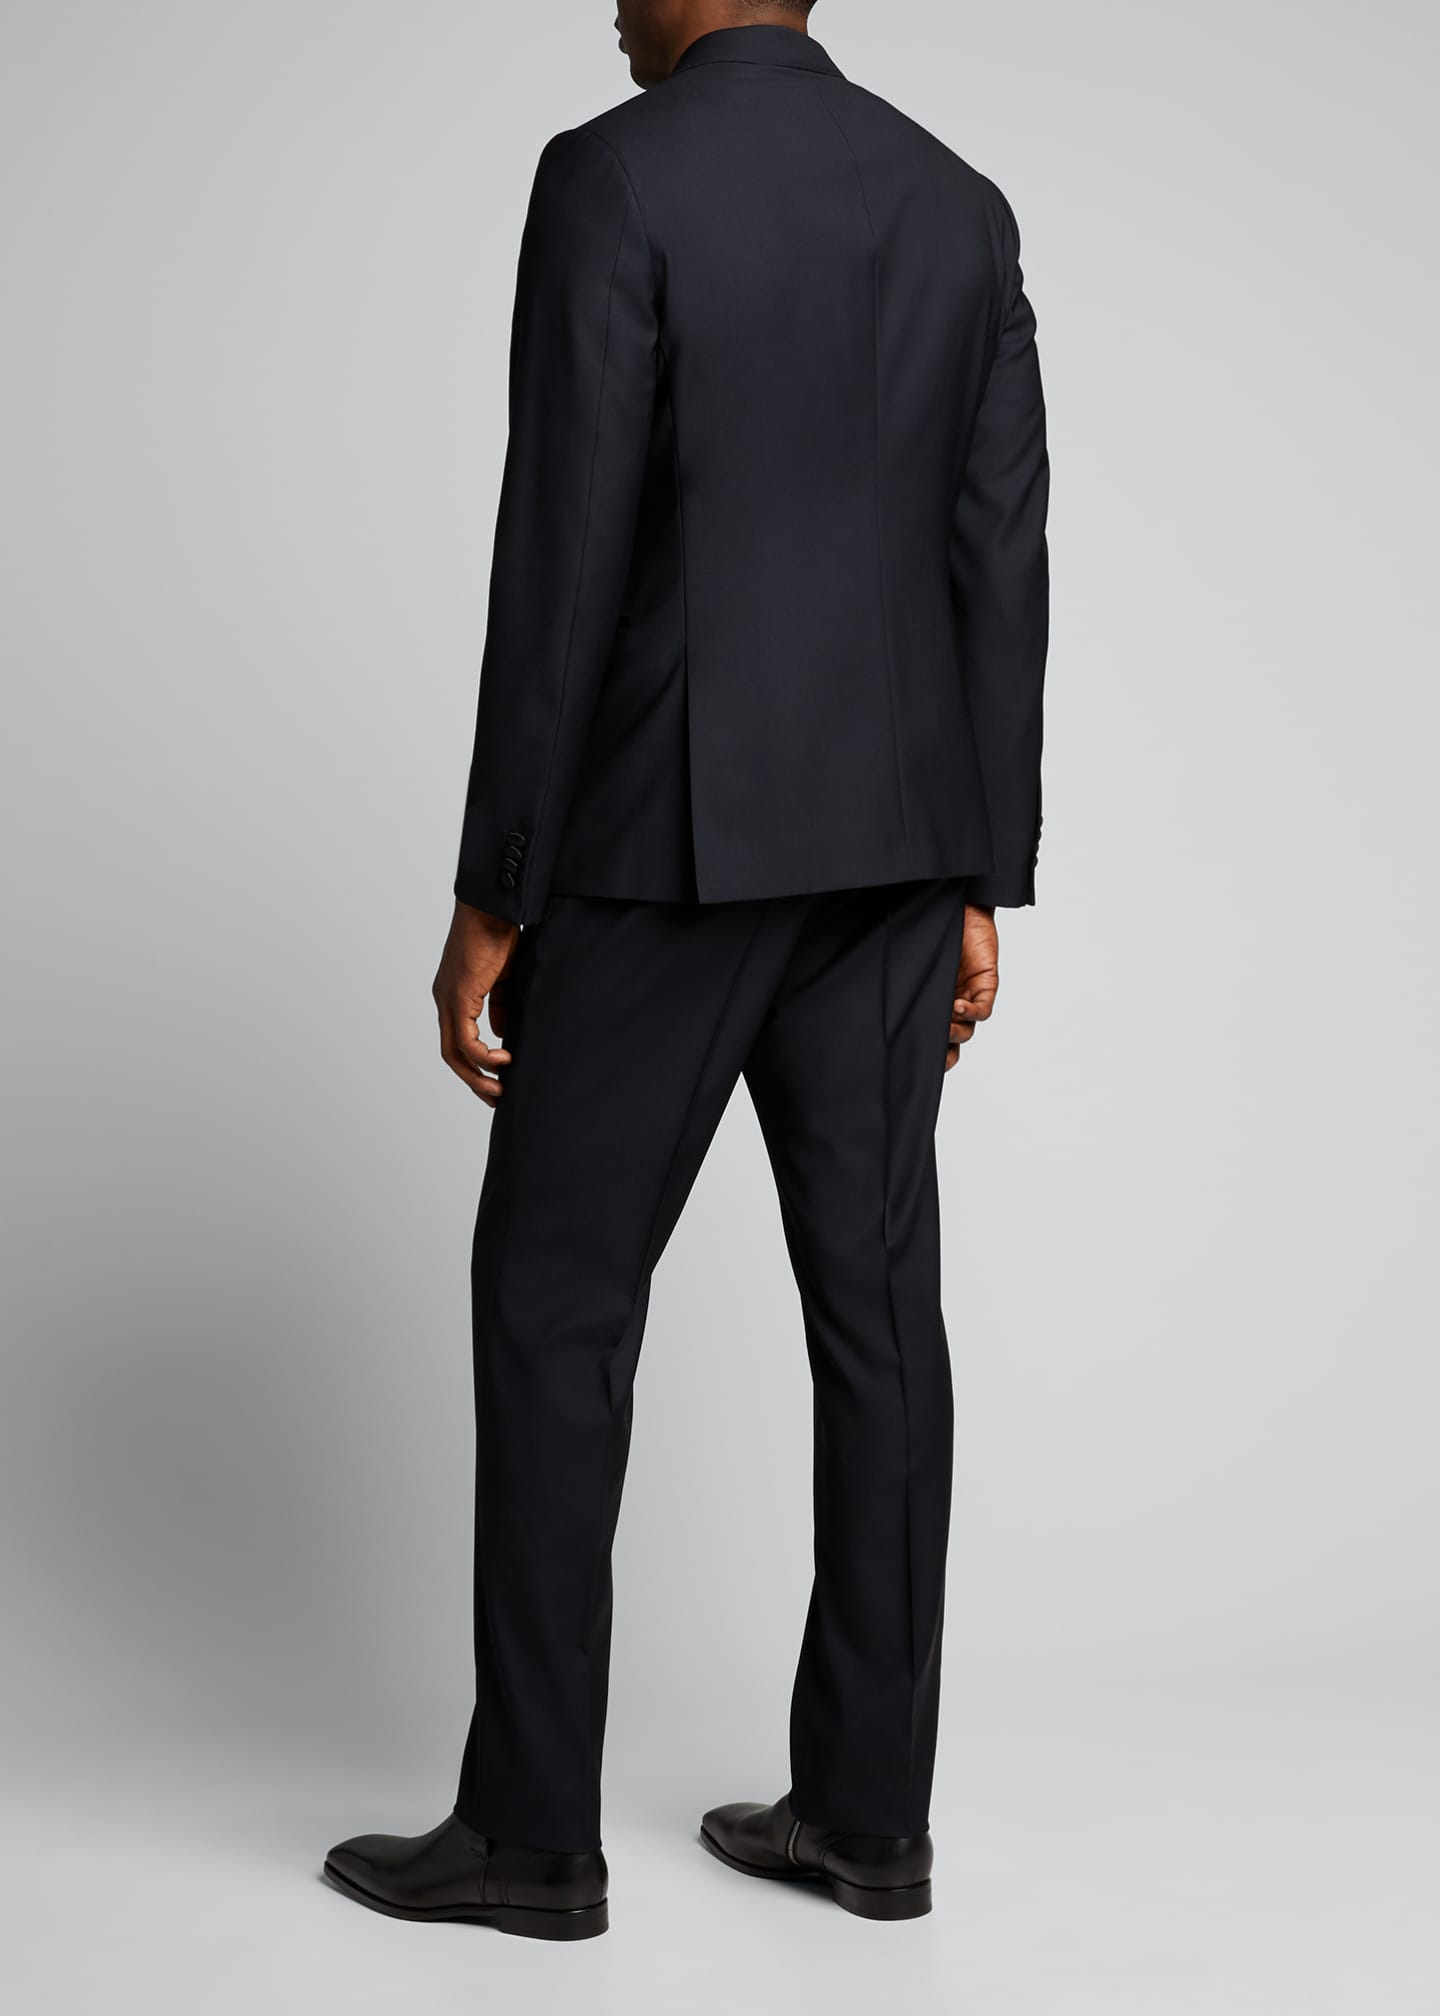 Image 2 of 5: Men's Satin-Trim Two-Piece Tuxedo Suit